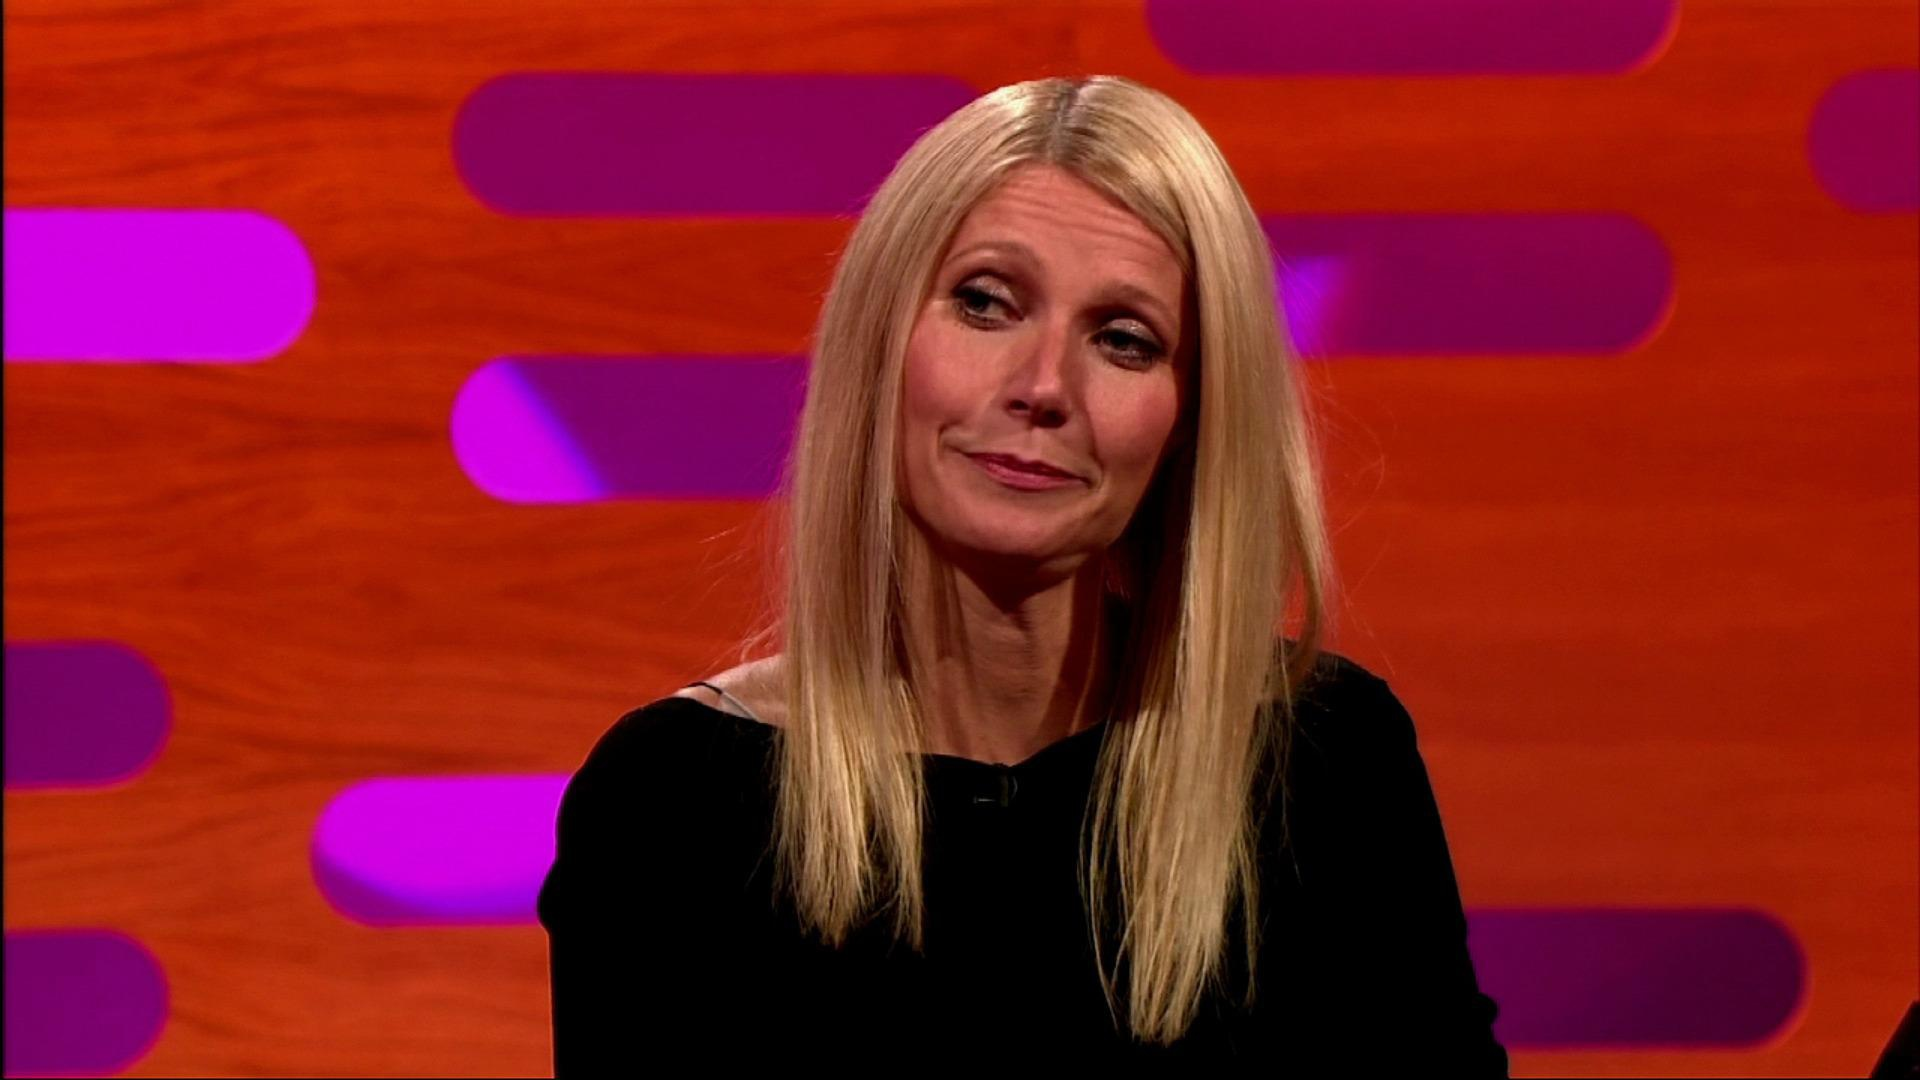 Step away from the mic: Gwyneth Paltrow screws up, again